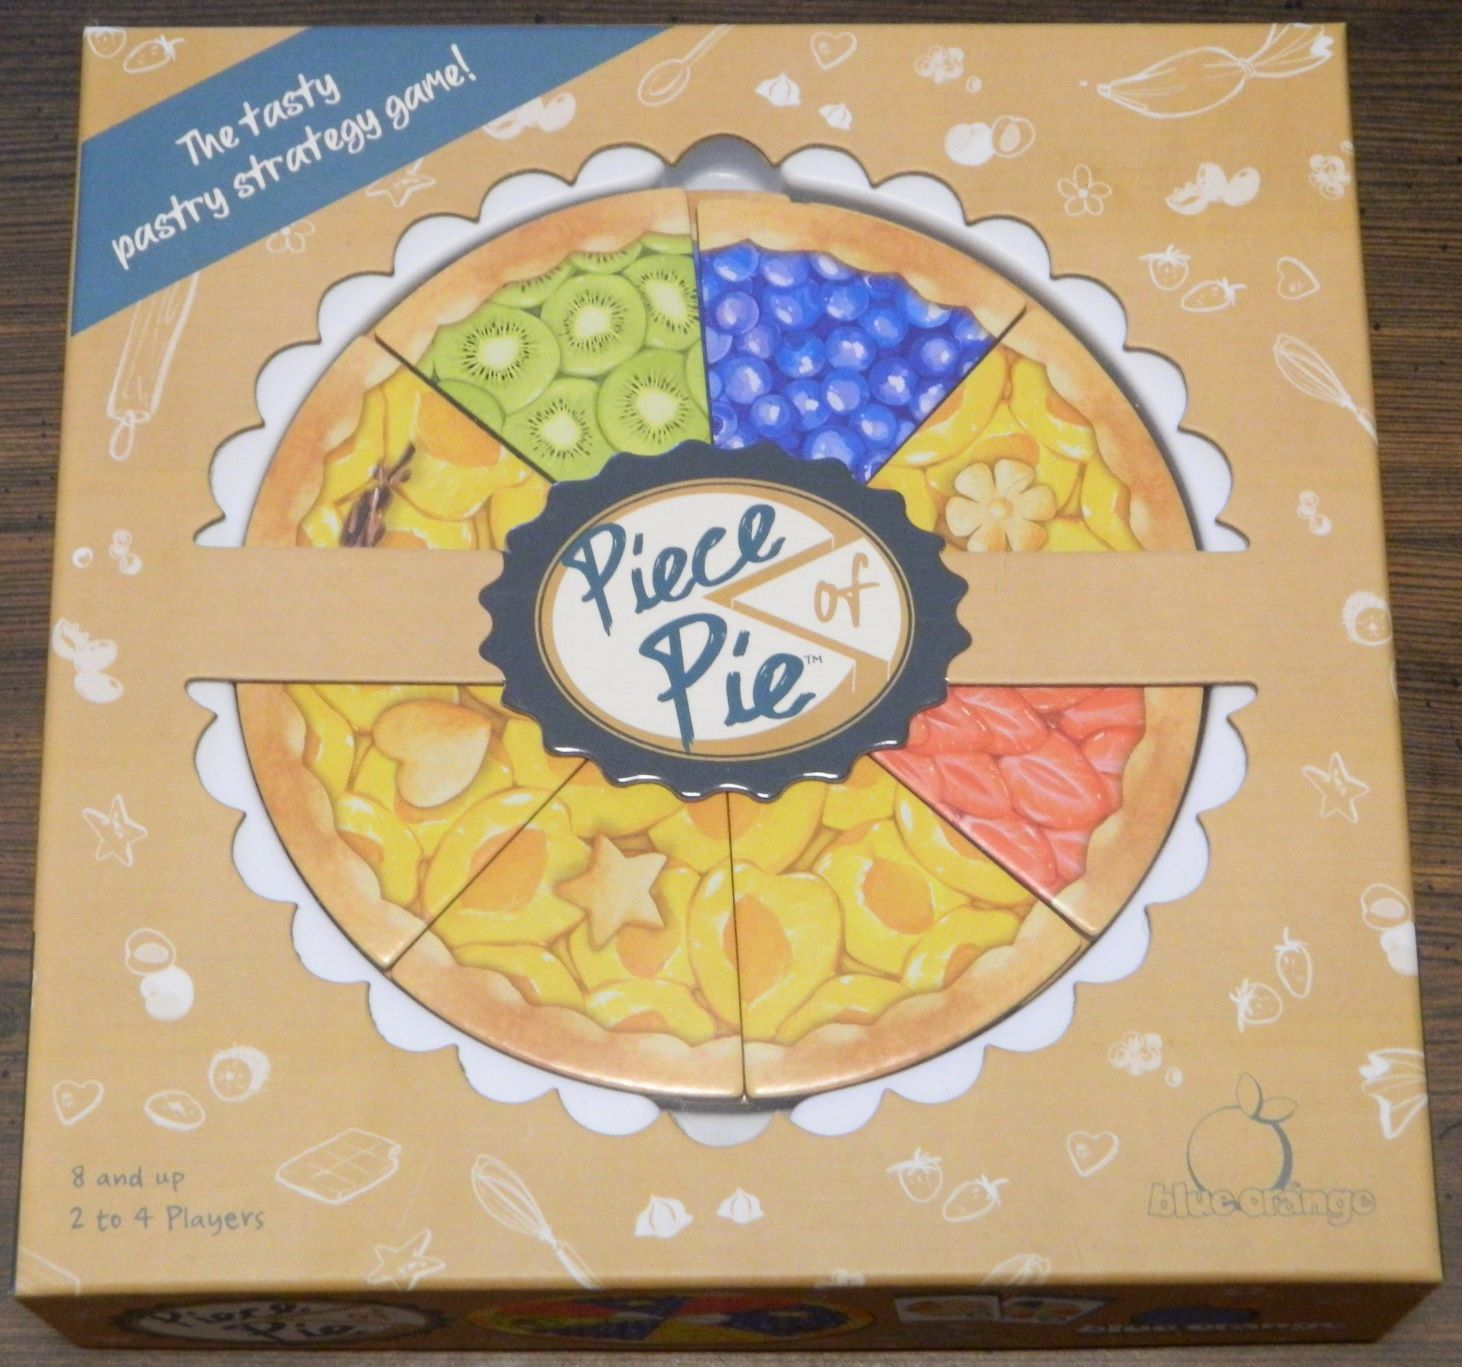 Box for Piece of Pie